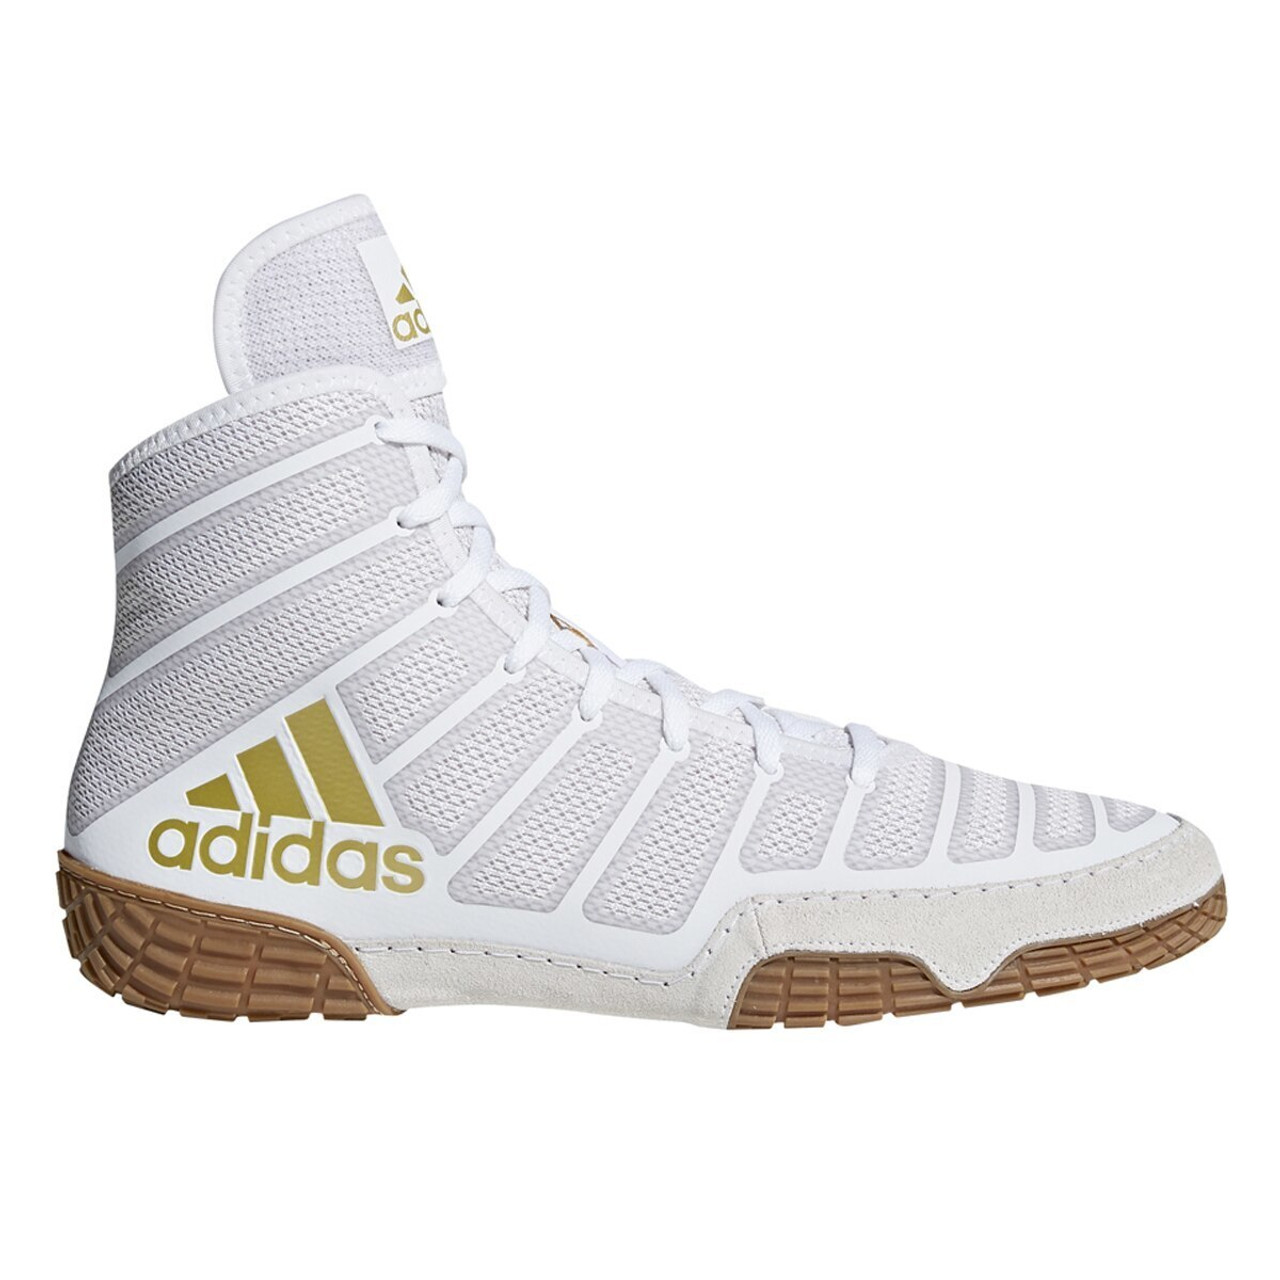 Adidas Adizero Varner Adult Wrestling Shoes DA9891 White, Gold